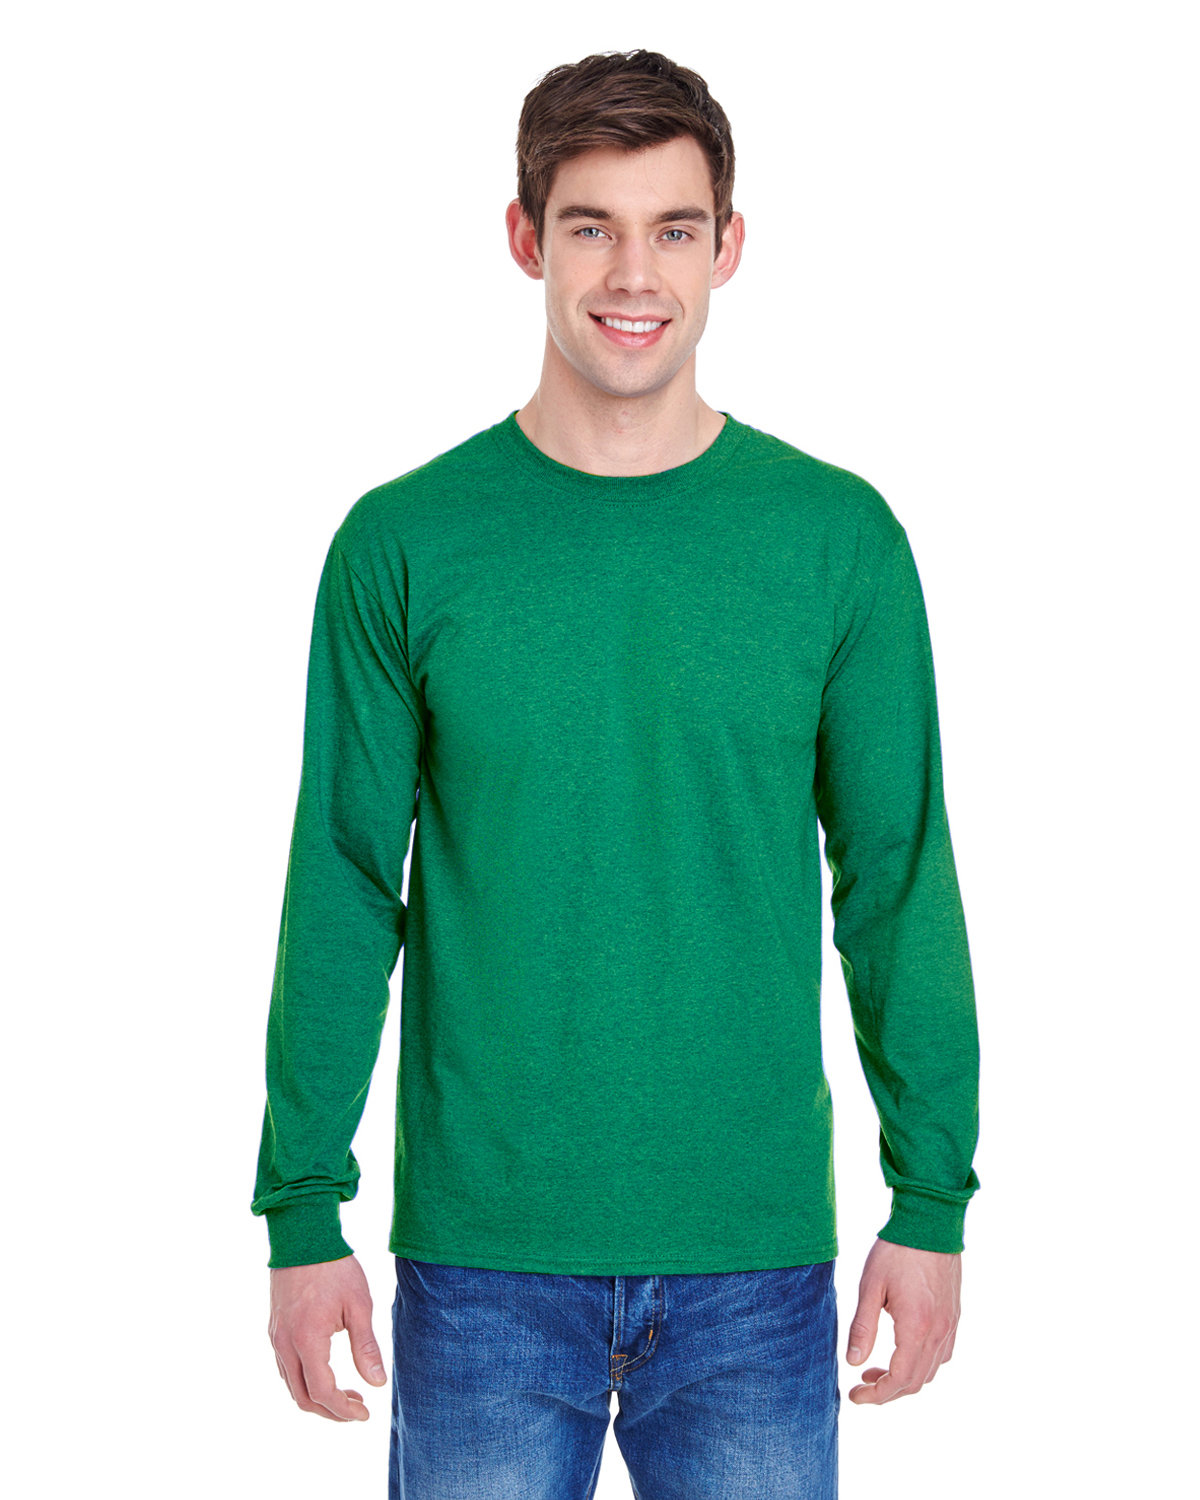 Fruit of the Loom Adult HD Cotton™ Long-Sleeve T-Shirt RETRO HTHR GREEN